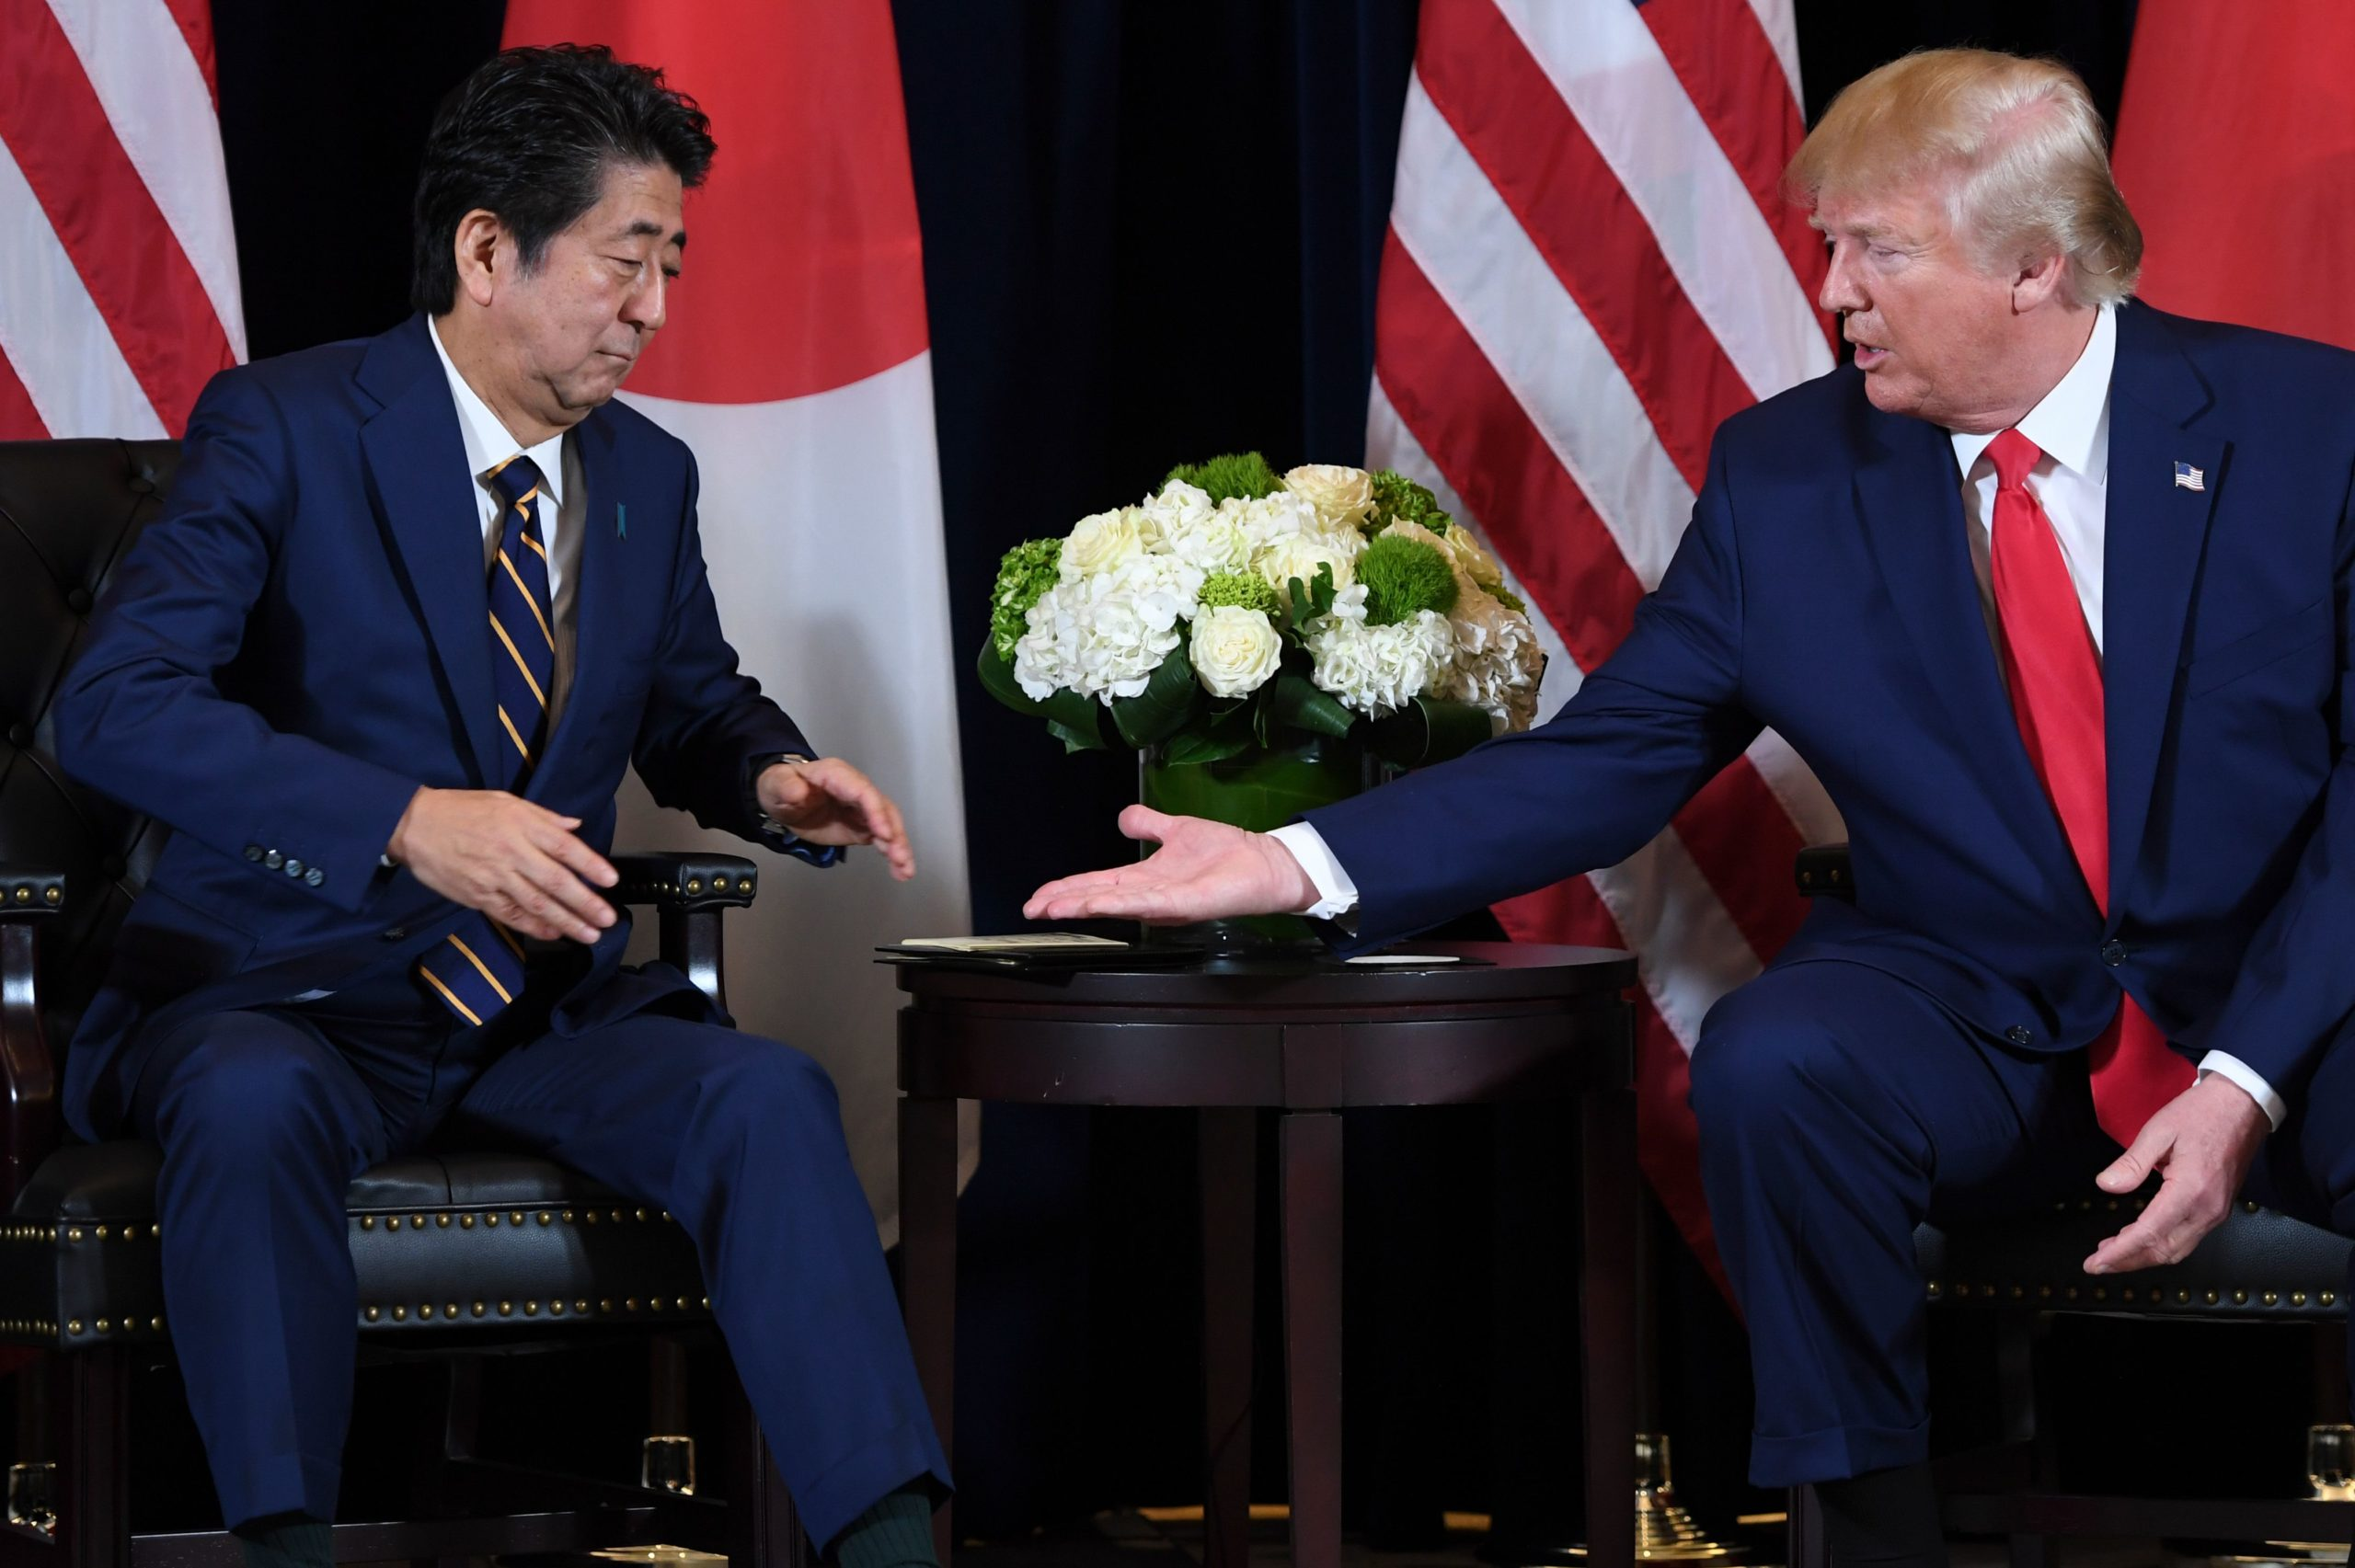 President Donald Trump and former Japanese Prime Minister Shinzo Abe shake hands during a meeting in New York on Sept. 25, 2019. (Saul Loeb/AFP via Getty Images)